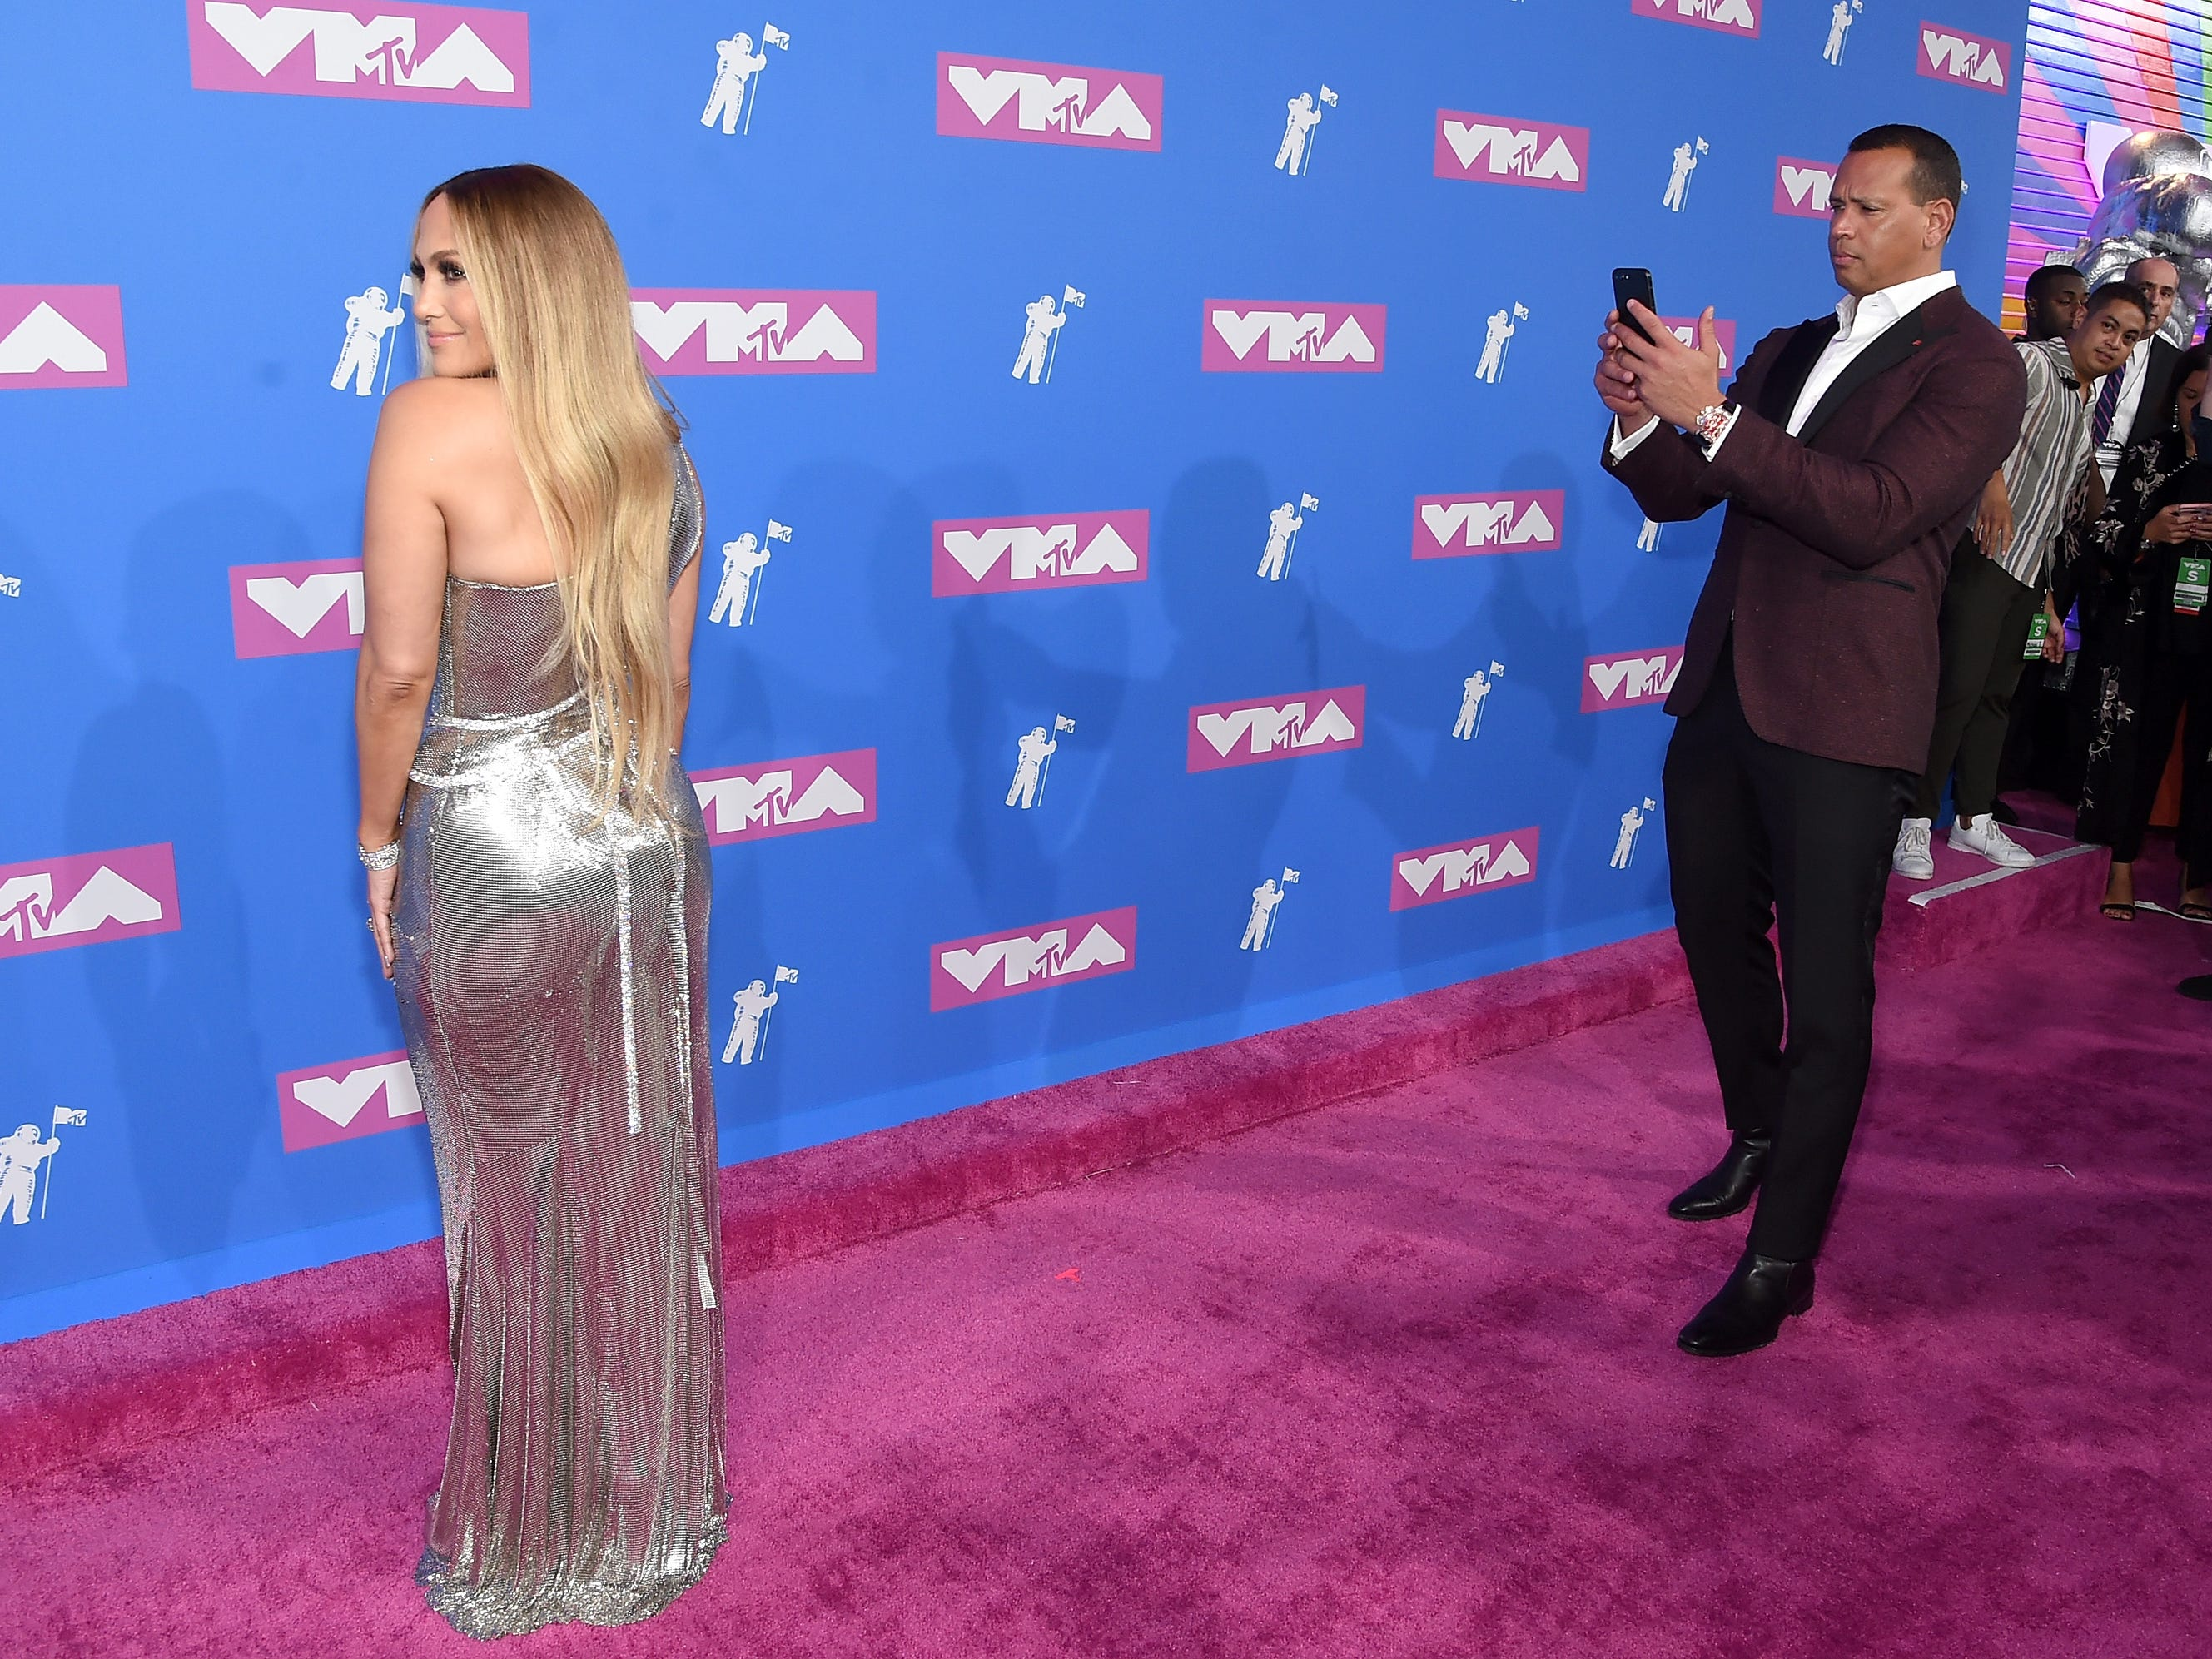 NEW YORK, NY - AUGUST 20:  Alex Rodriguez and Jennifer Lopez attend the 2018 MTV Video Music Awards at Radio City Music Hall on August 20, 2018 in New York City.  (Photo by Jamie McCarthy/Getty Images) ORG XMIT: 775210277 ORIG FILE ID: 1020303578